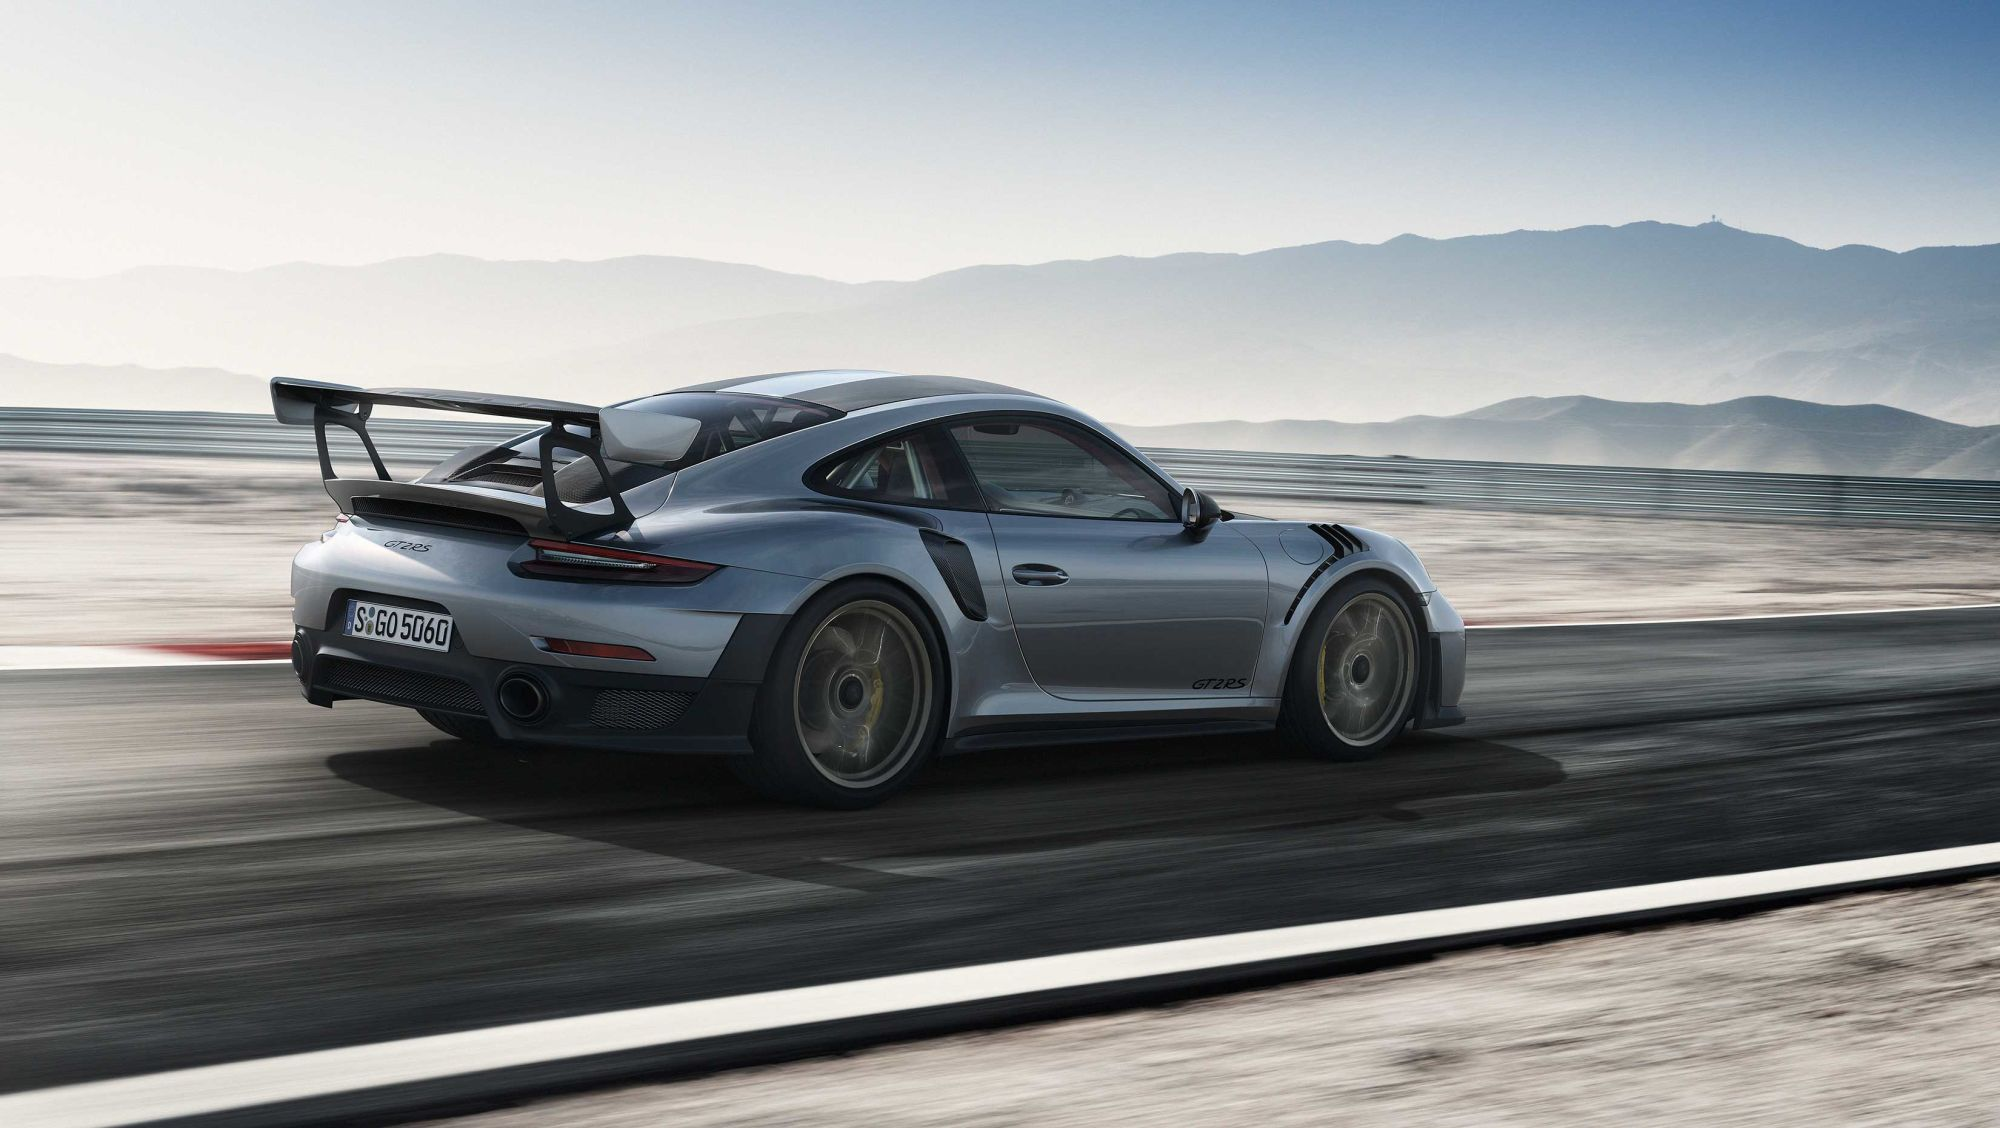 Porsche 911 GT2 RS - images leaked ahead of debut